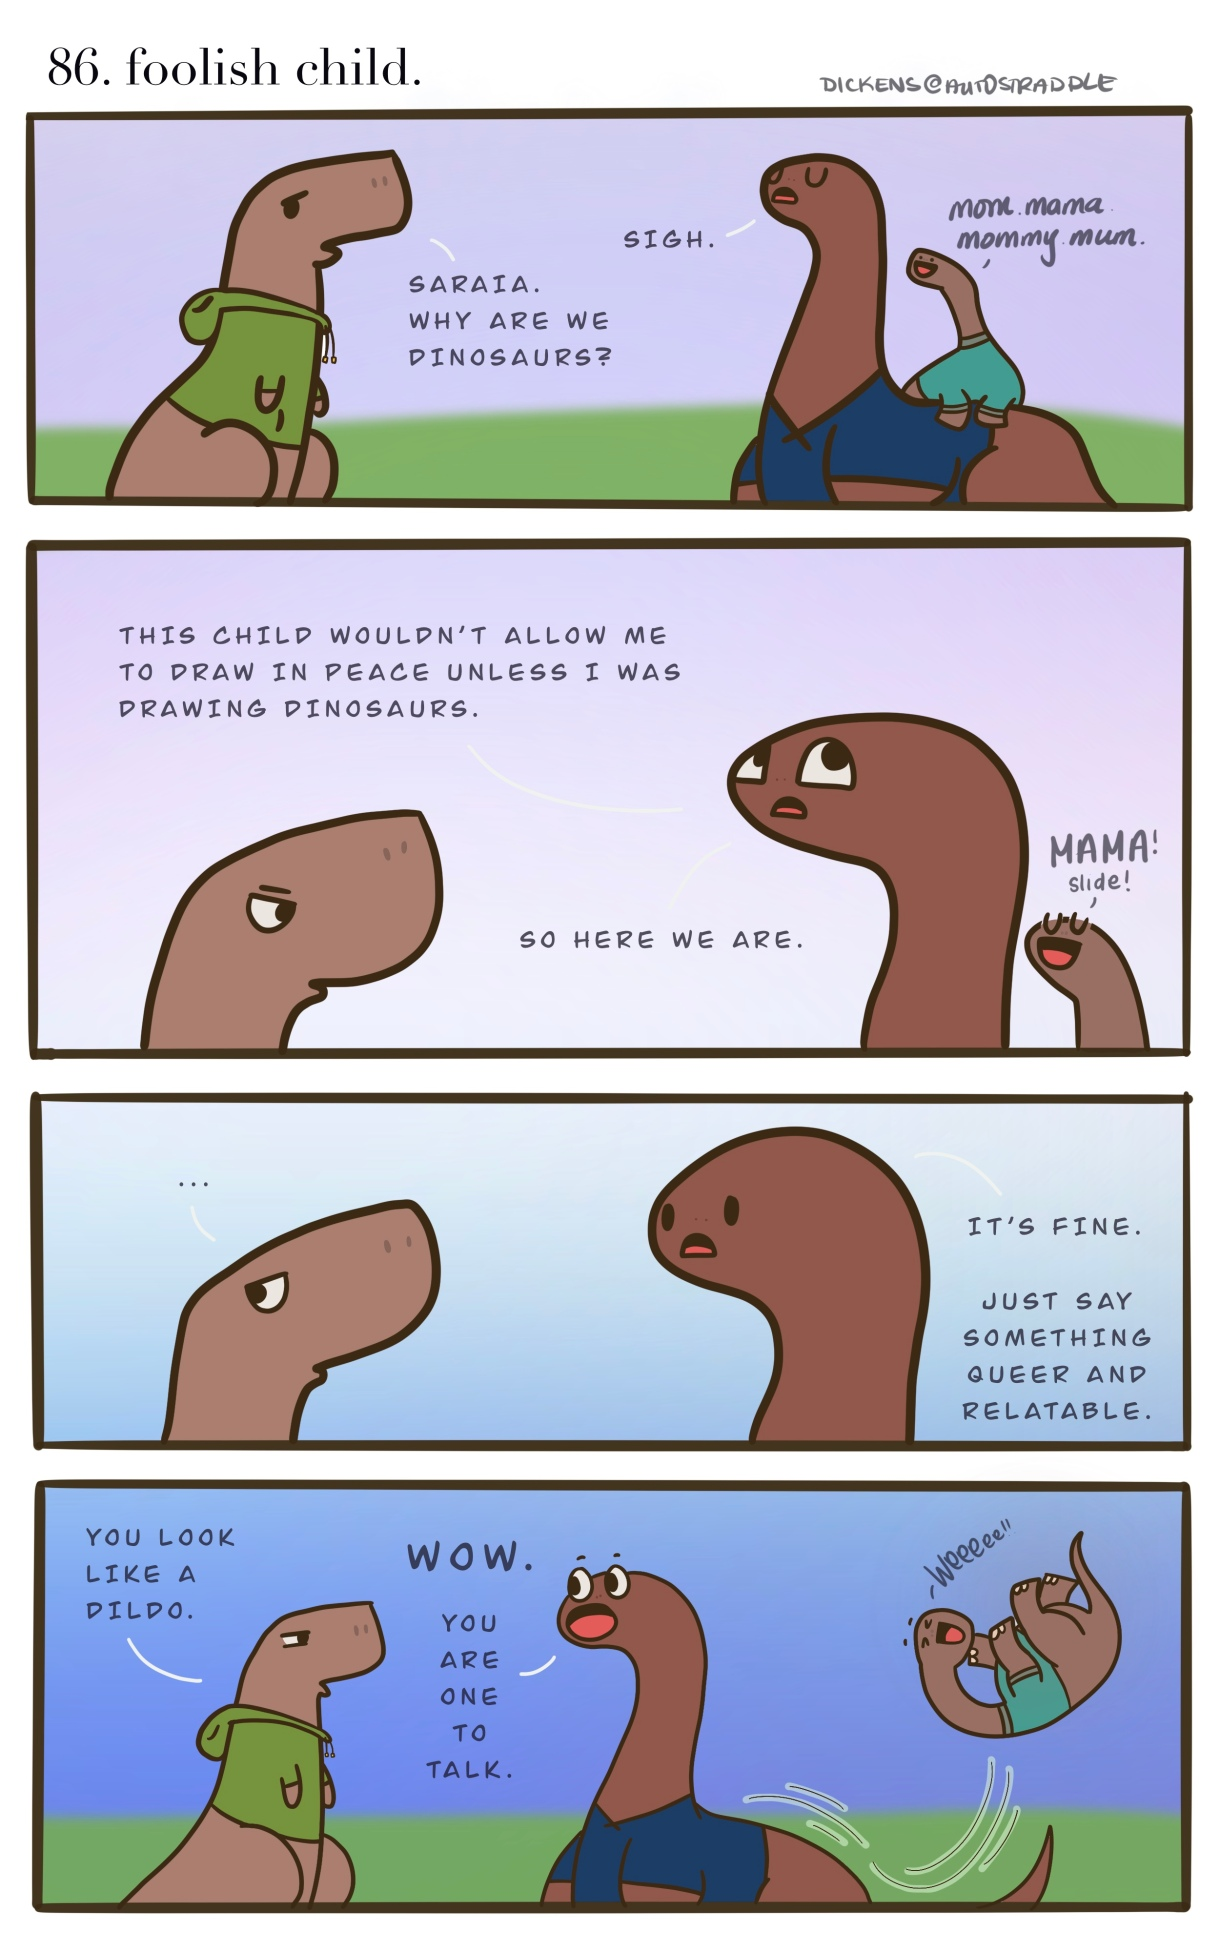 """In a four panel comic, two hand drawn dinosaurs are asking, why are they in fact dinosaurs? A baby Dino sits on one of their backs making cute noises. The Dickens Dino says, """"This child wouldn't allow me to draw in peace unless I was drawing dinosaurs."""" And then Dickens explains """"It's fine — just say something queer and relatable."""" To which the other Dino jokes, """"You look like a dildo."""" and Dickens laughs, """"you are one to talk!"""""""